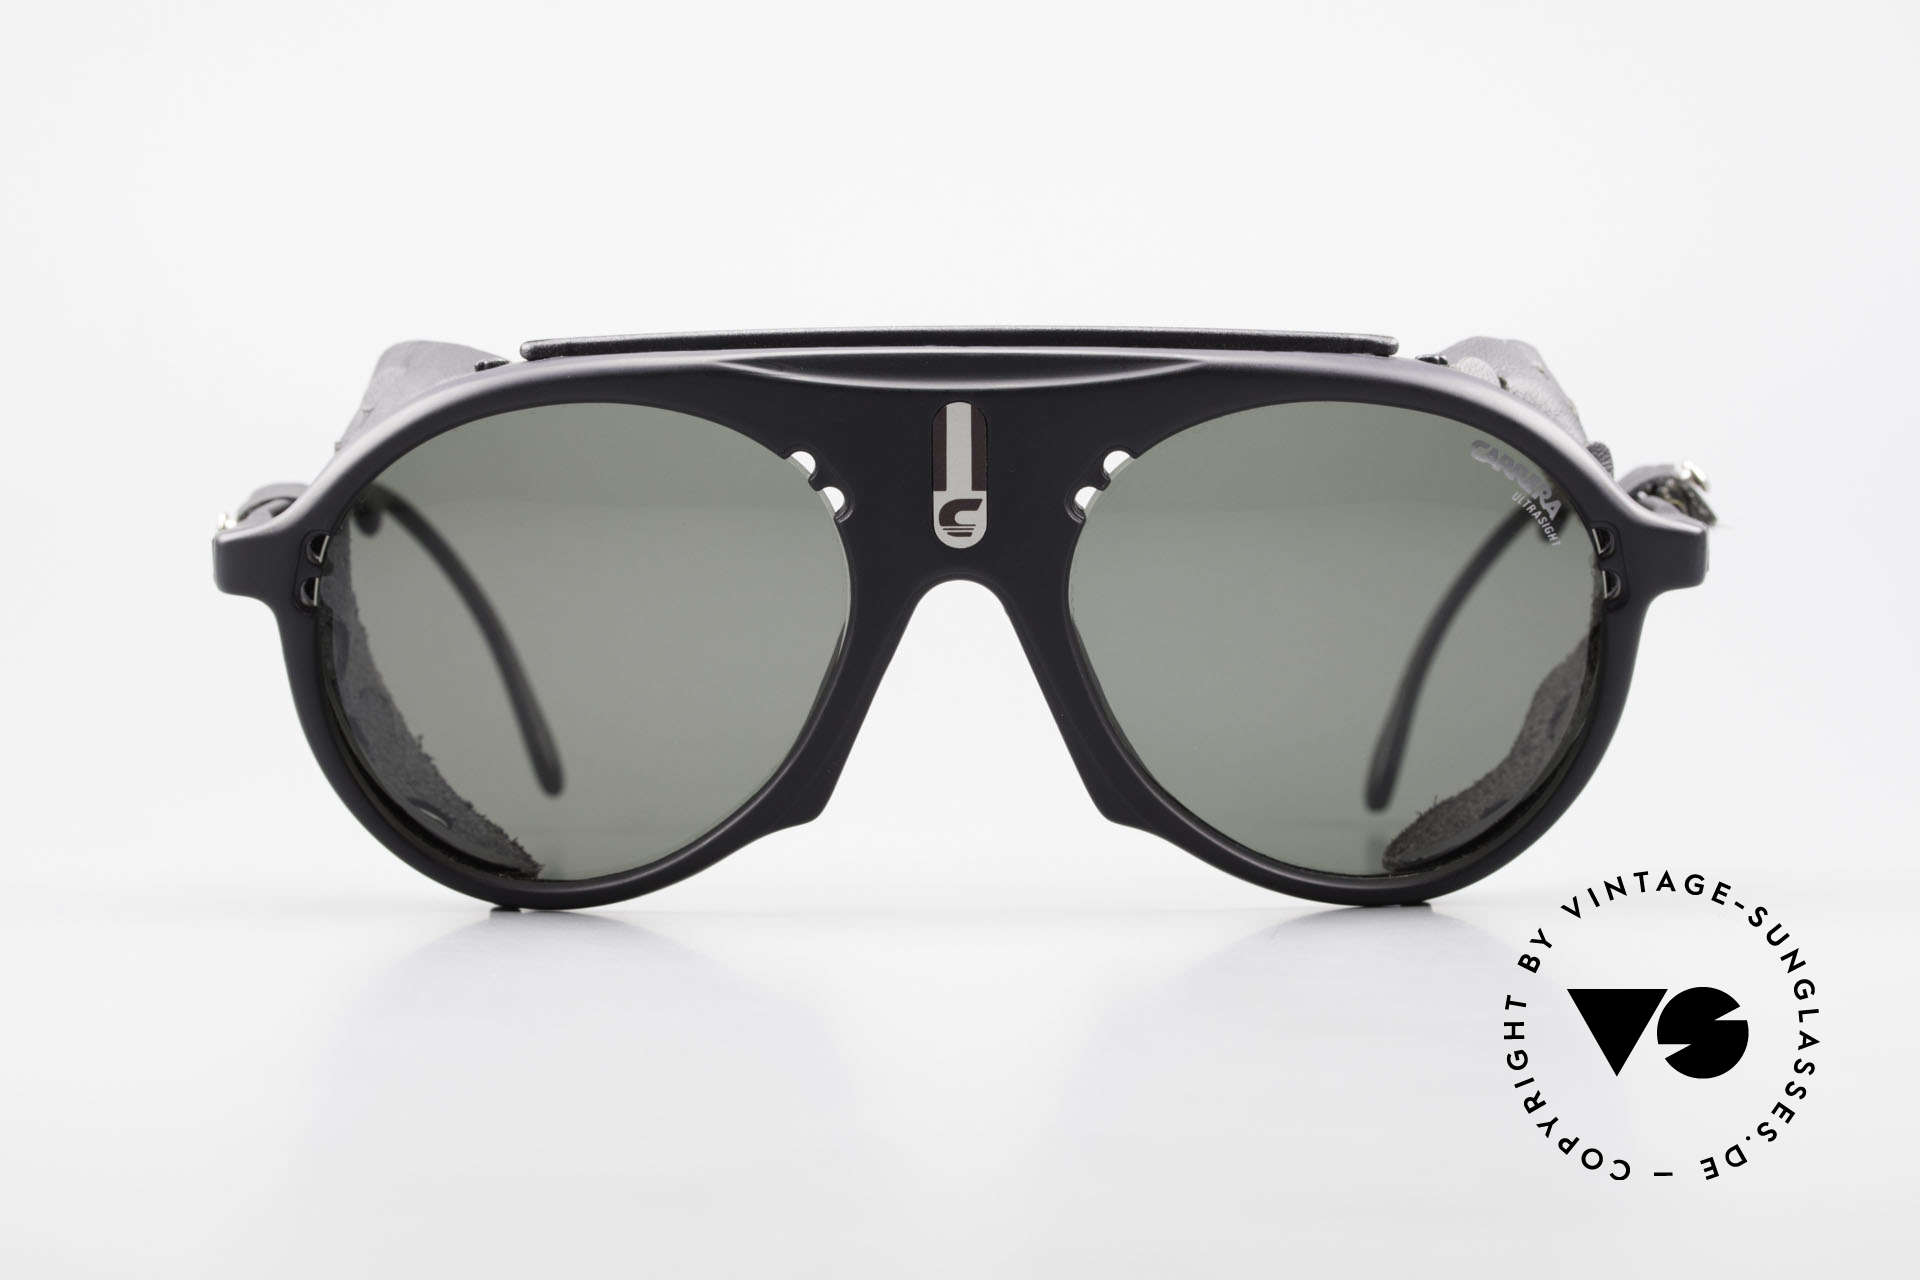 Carrera 5436 Glacier Shades Water & Ice, made for extreme illumination (Water & Ice sports), Made for Men